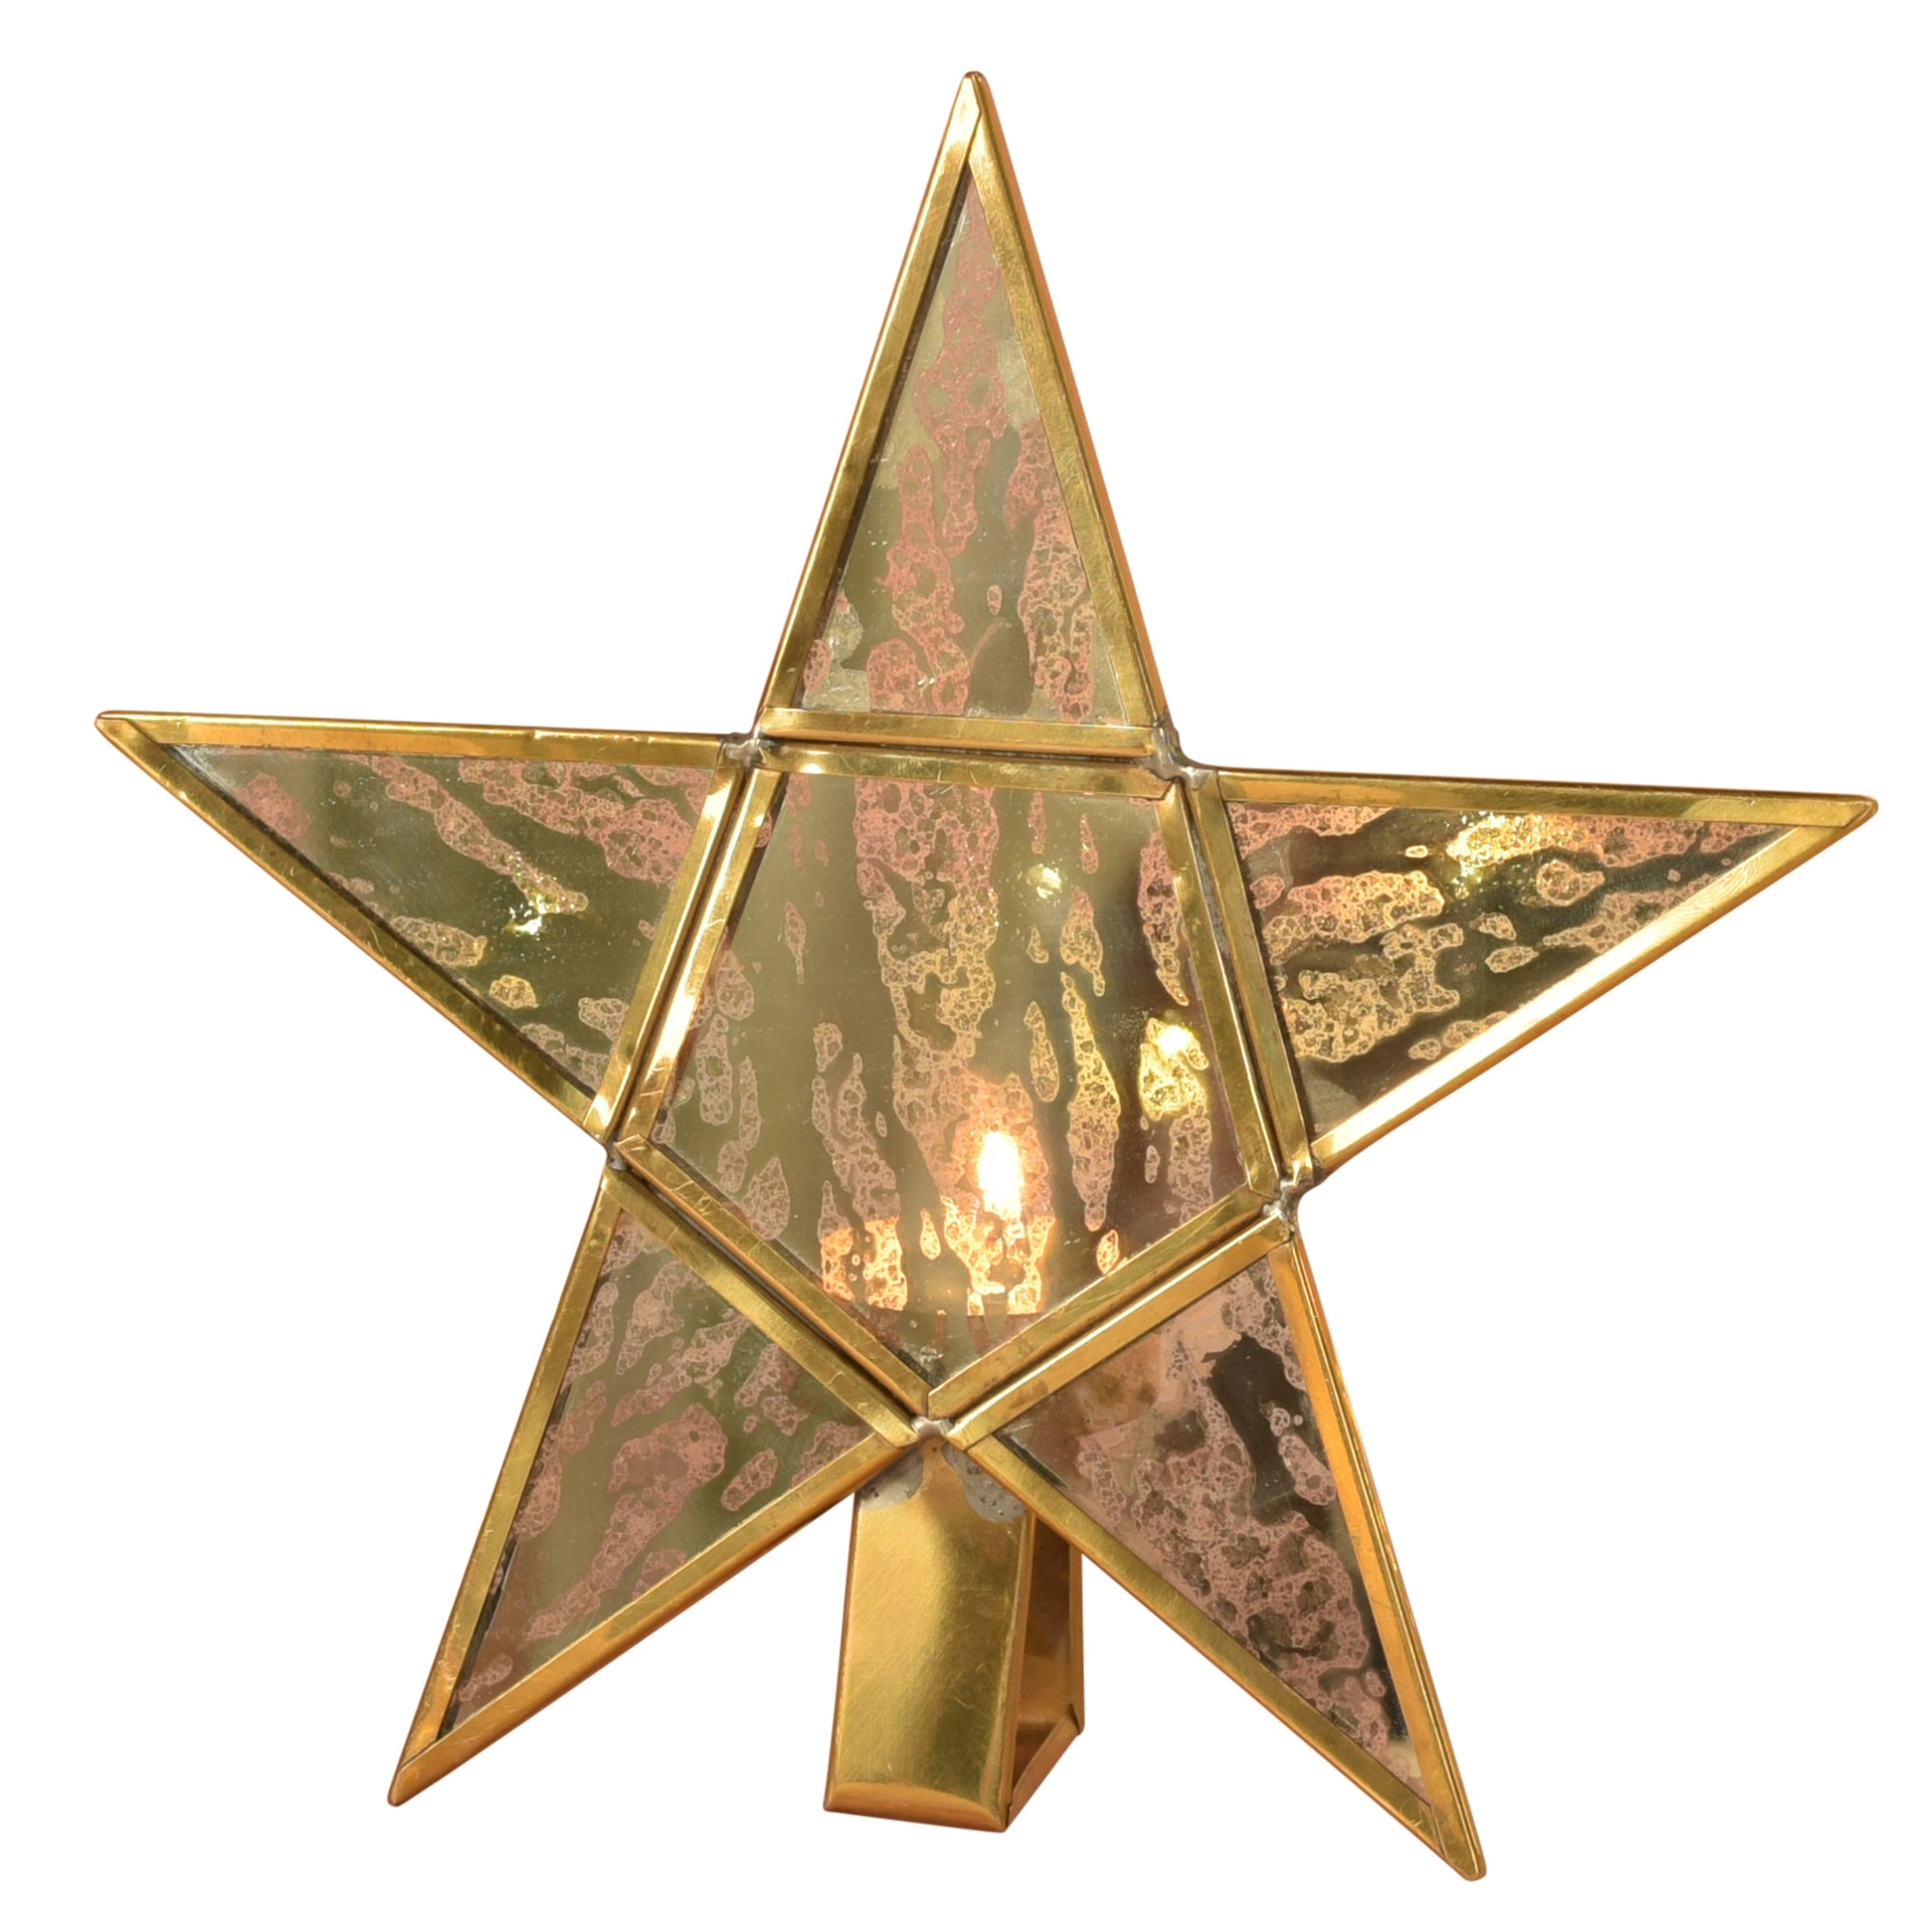 4367-14 - Antique Mirrored Star Tealight Holders - Glass & Brass - Large